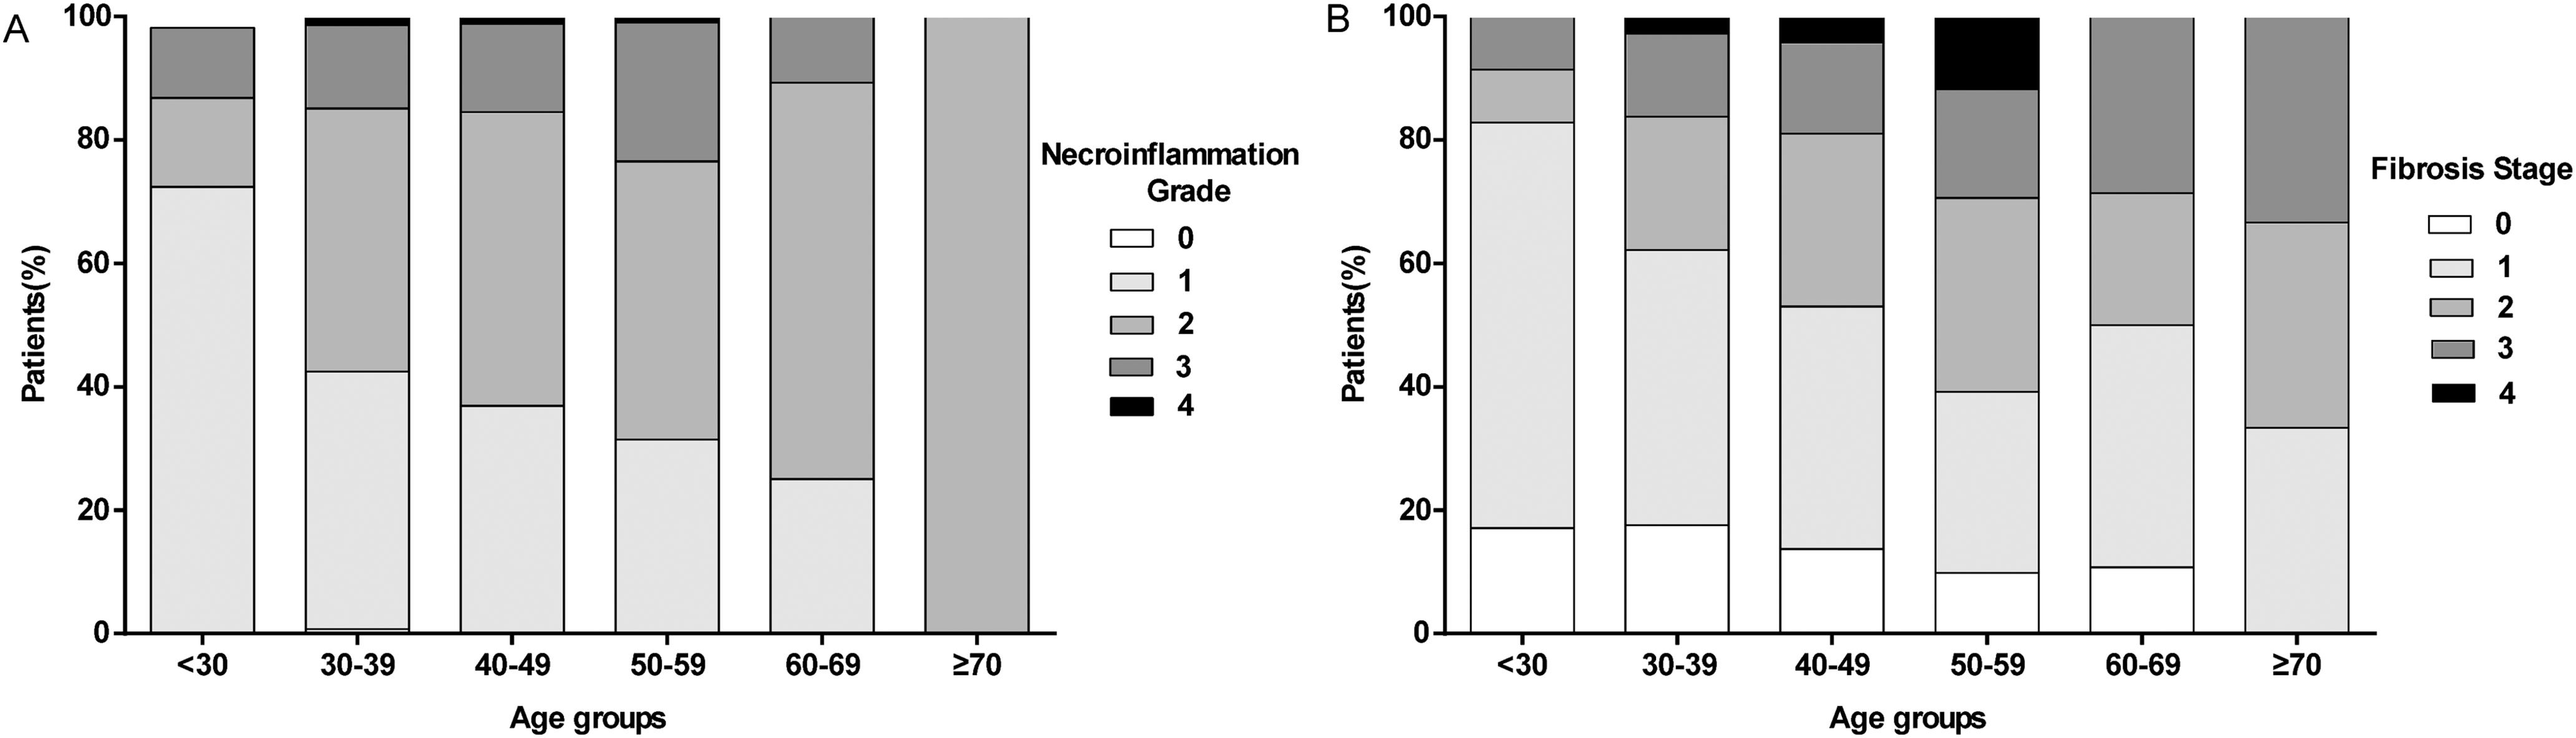 Distribution of (A) the necroinflammation grade and (B) fibrosis stage in 485 patients.